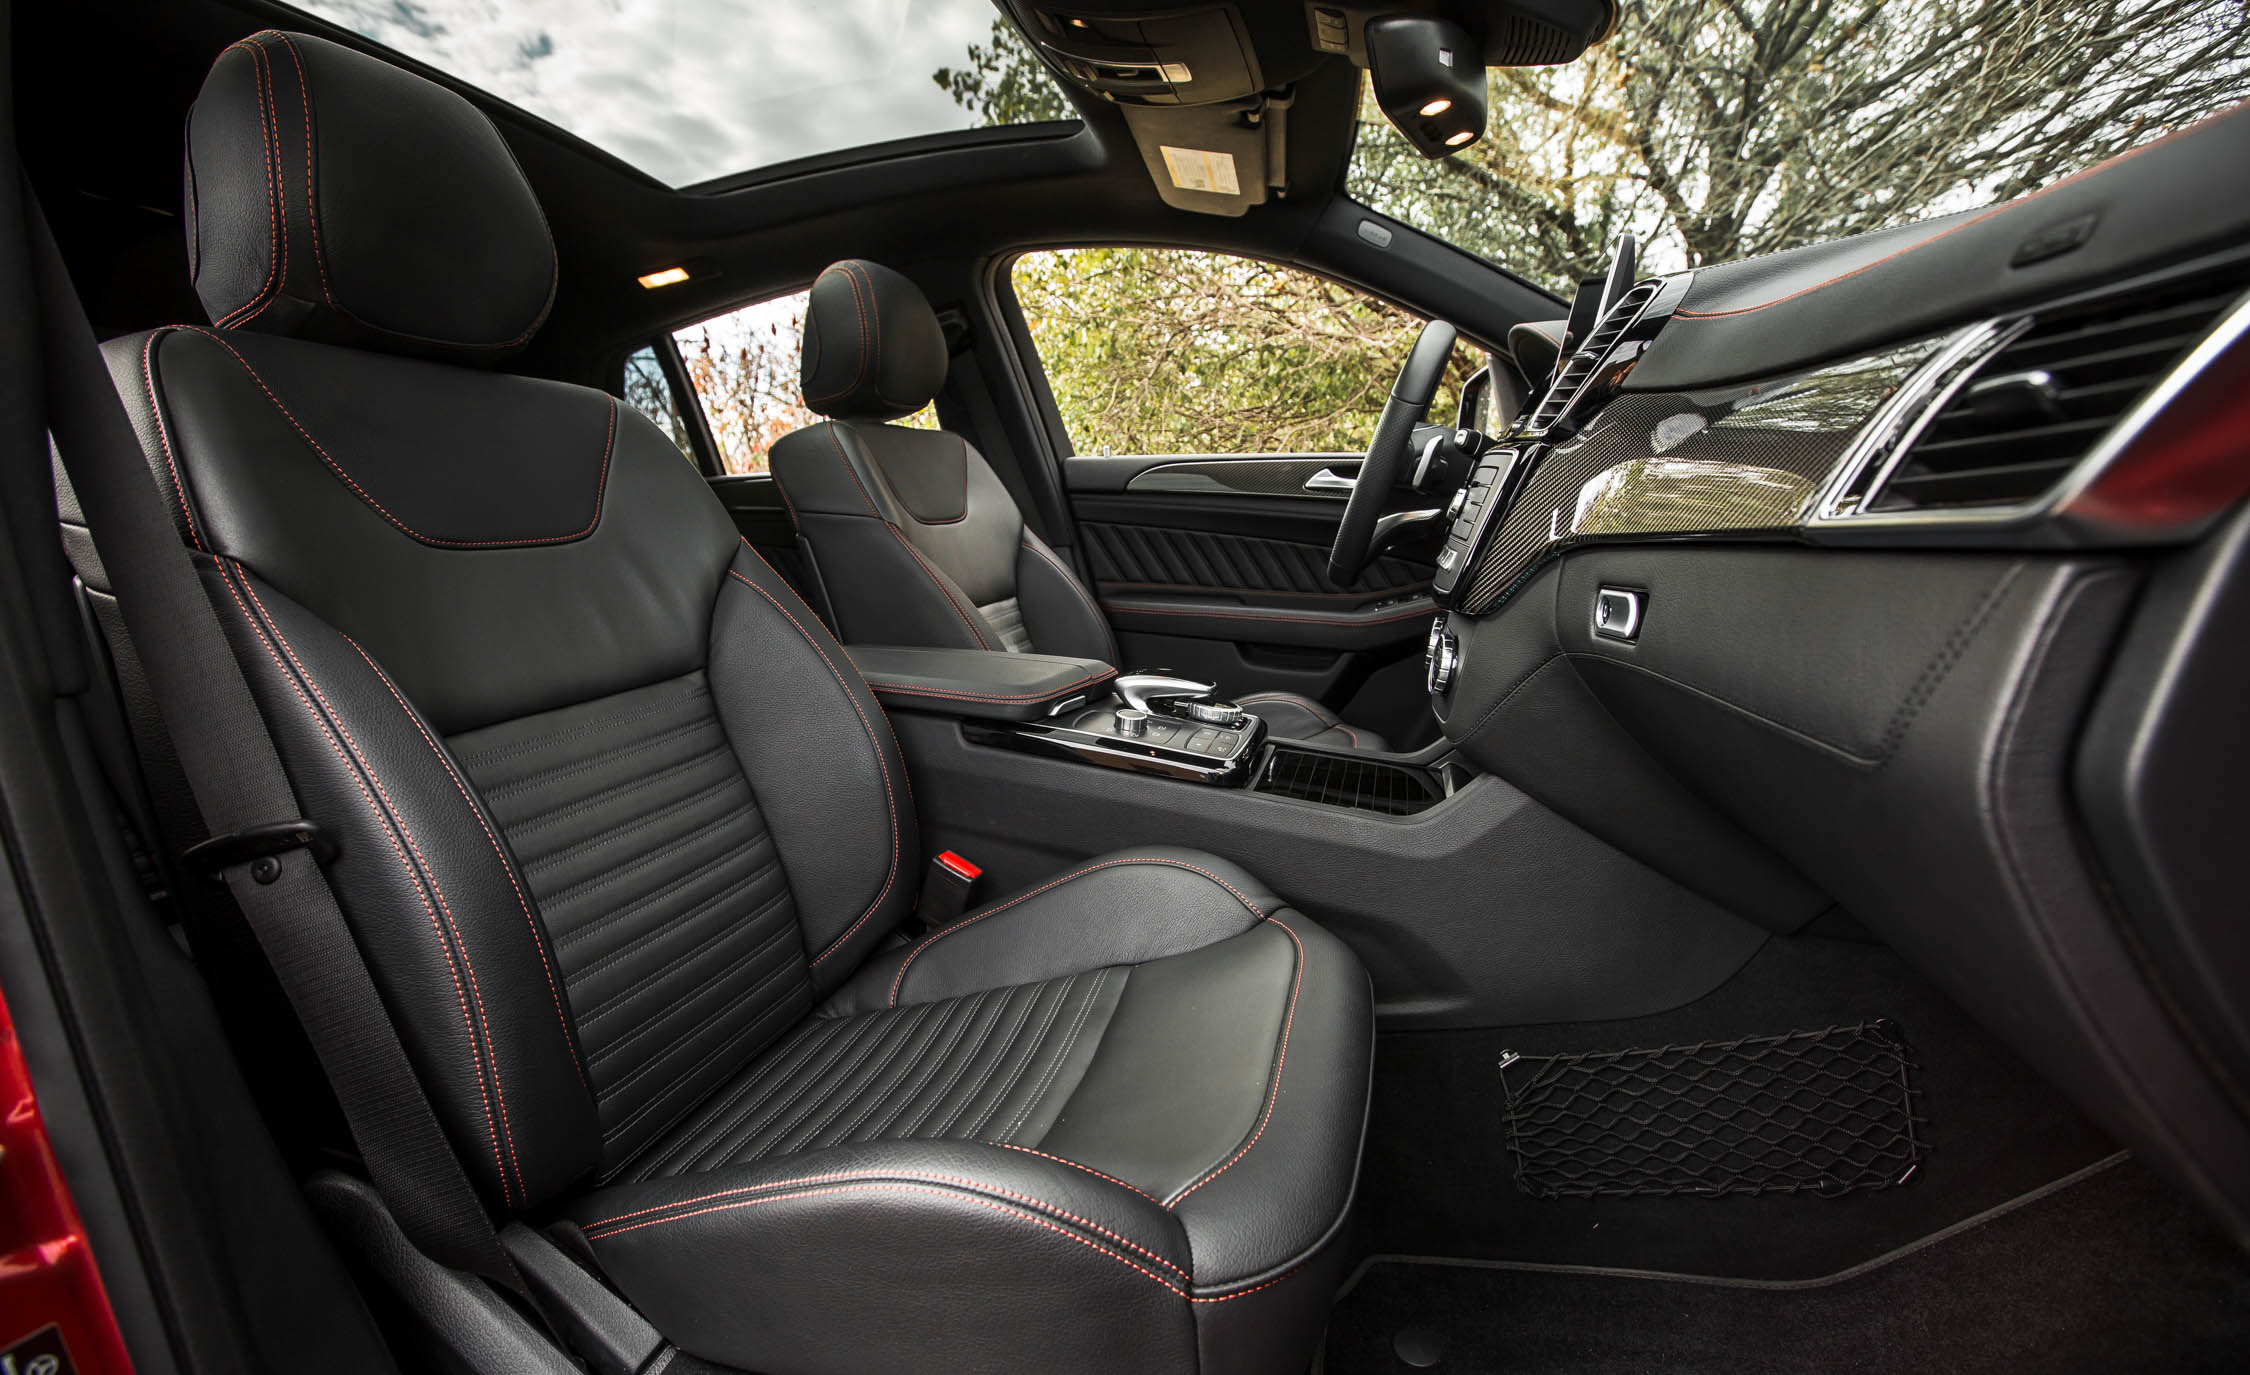 2016 Mercedes-Benz GLE450 AMG Coupe Interior Front Passenger Seat